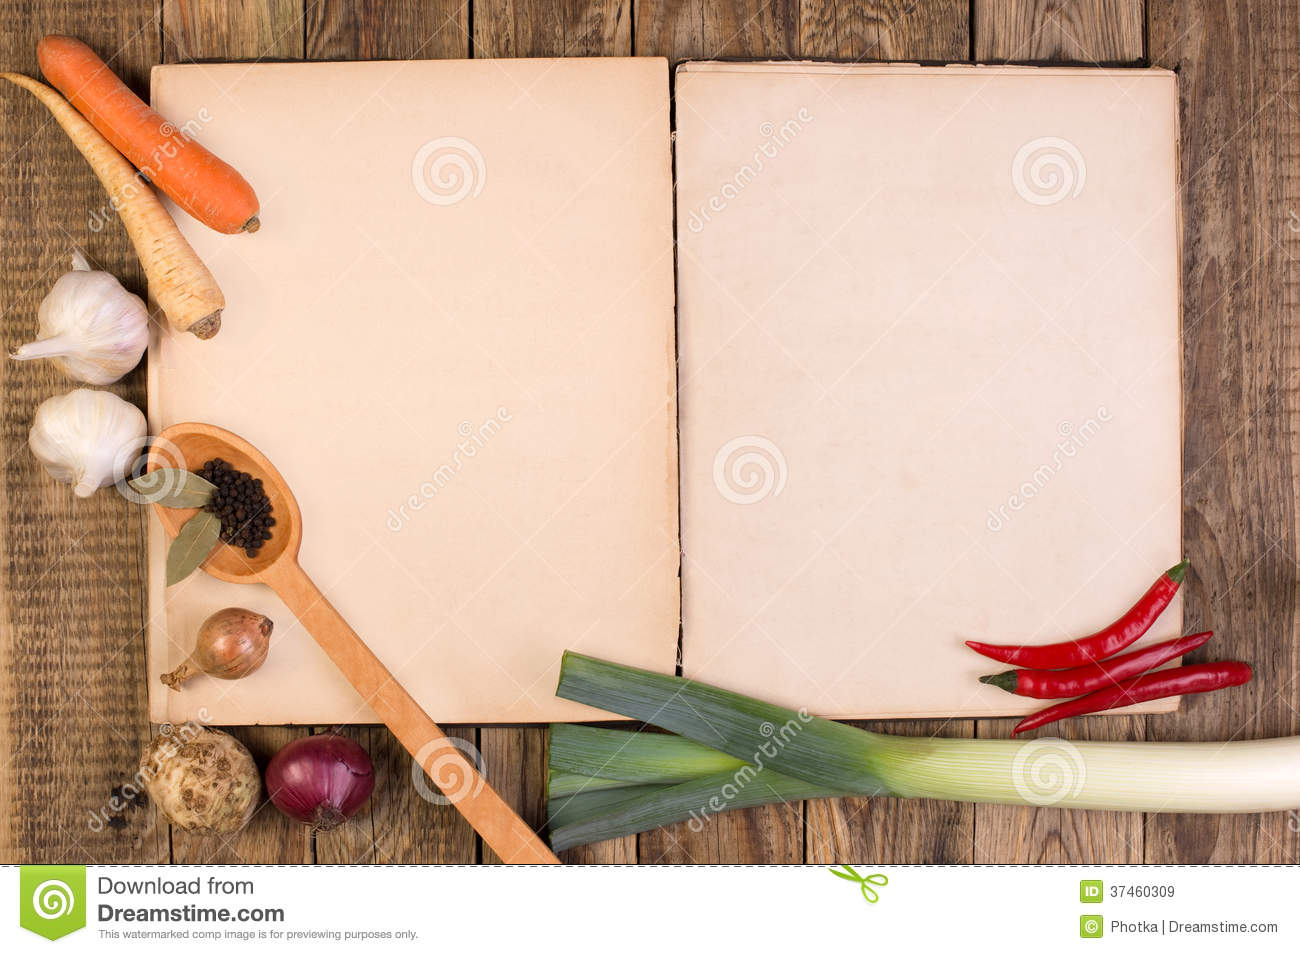 Fall Harvest Wallpaper Images Cookery Book On Wooden Background Royalty Free Stock